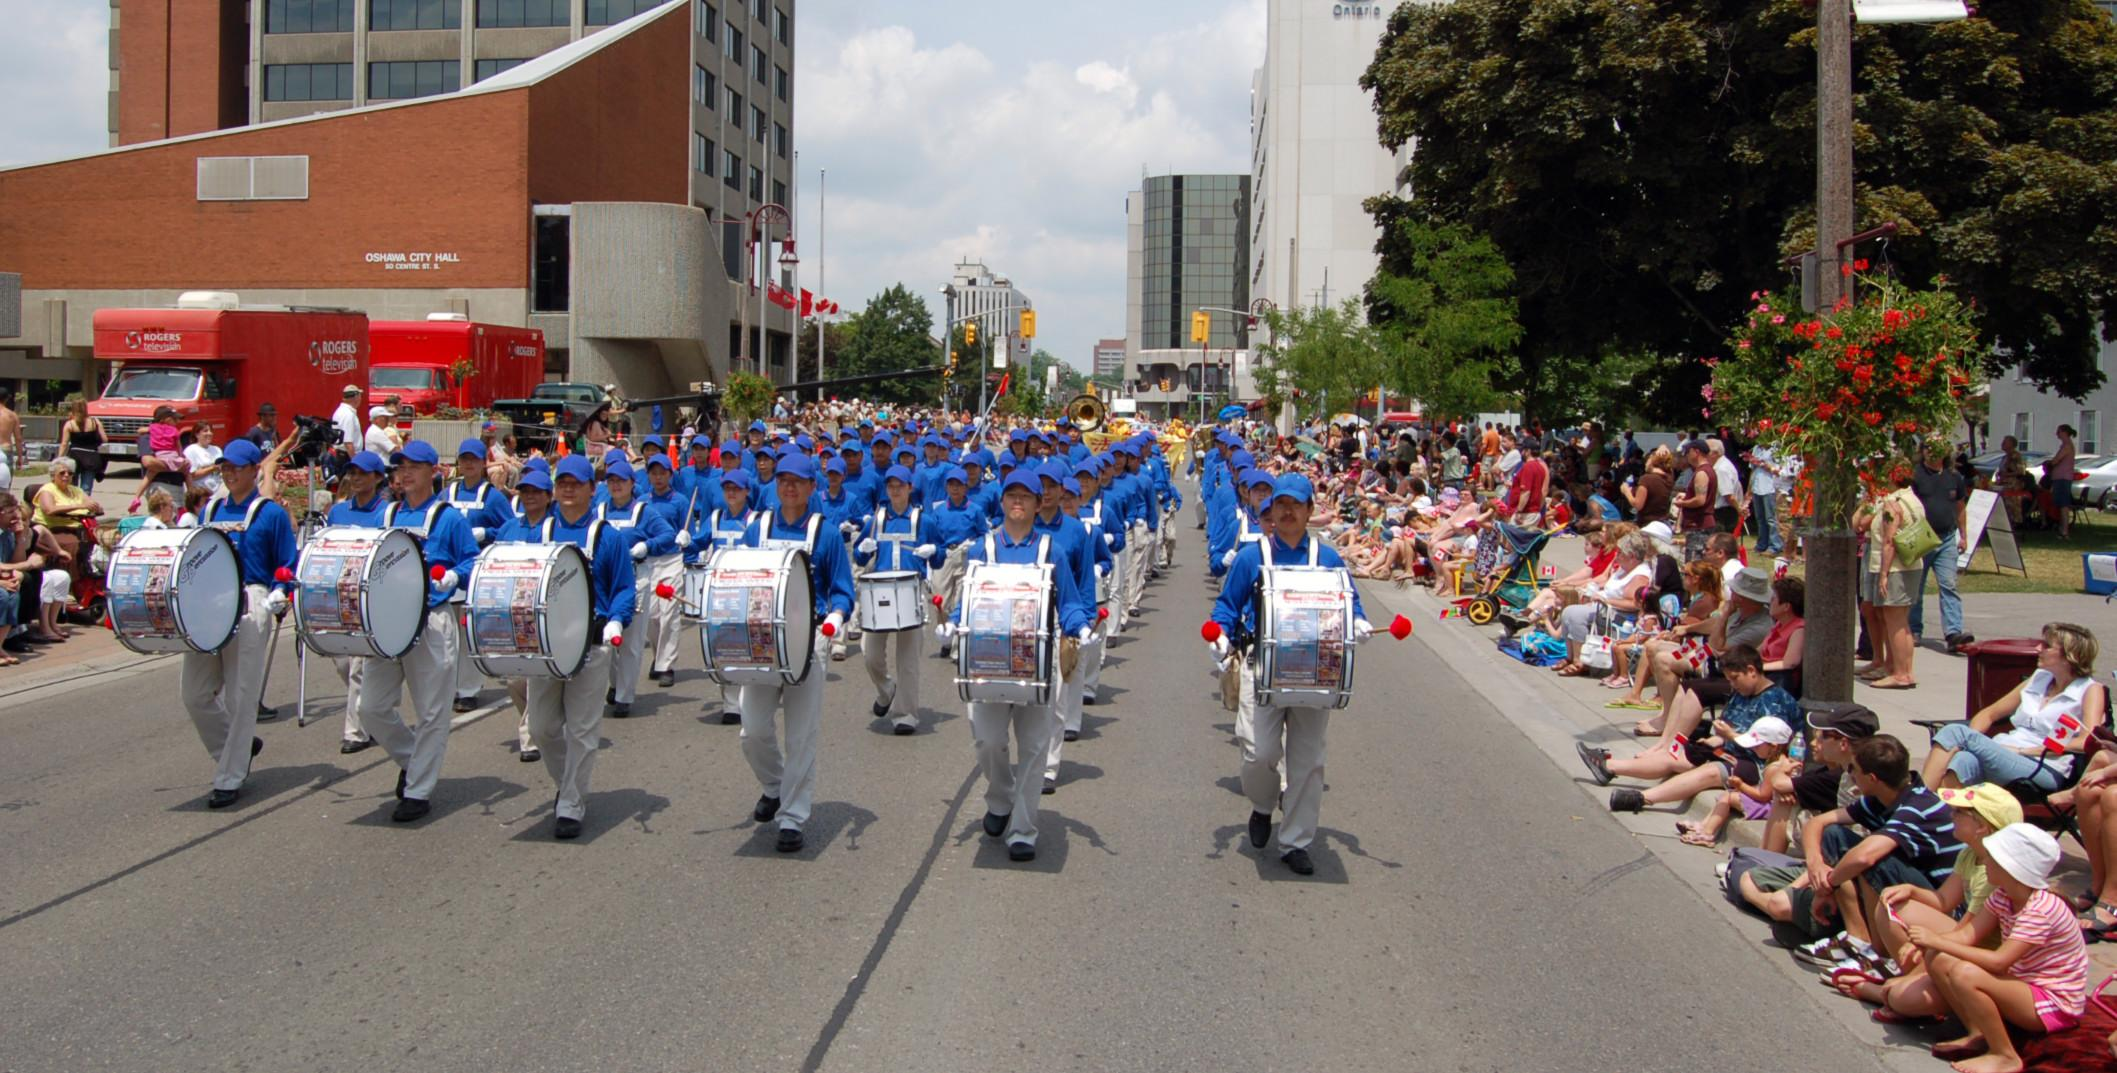 toronto practitioners display good demeanor at the oshawa canadian divine land ing band performs in the parade